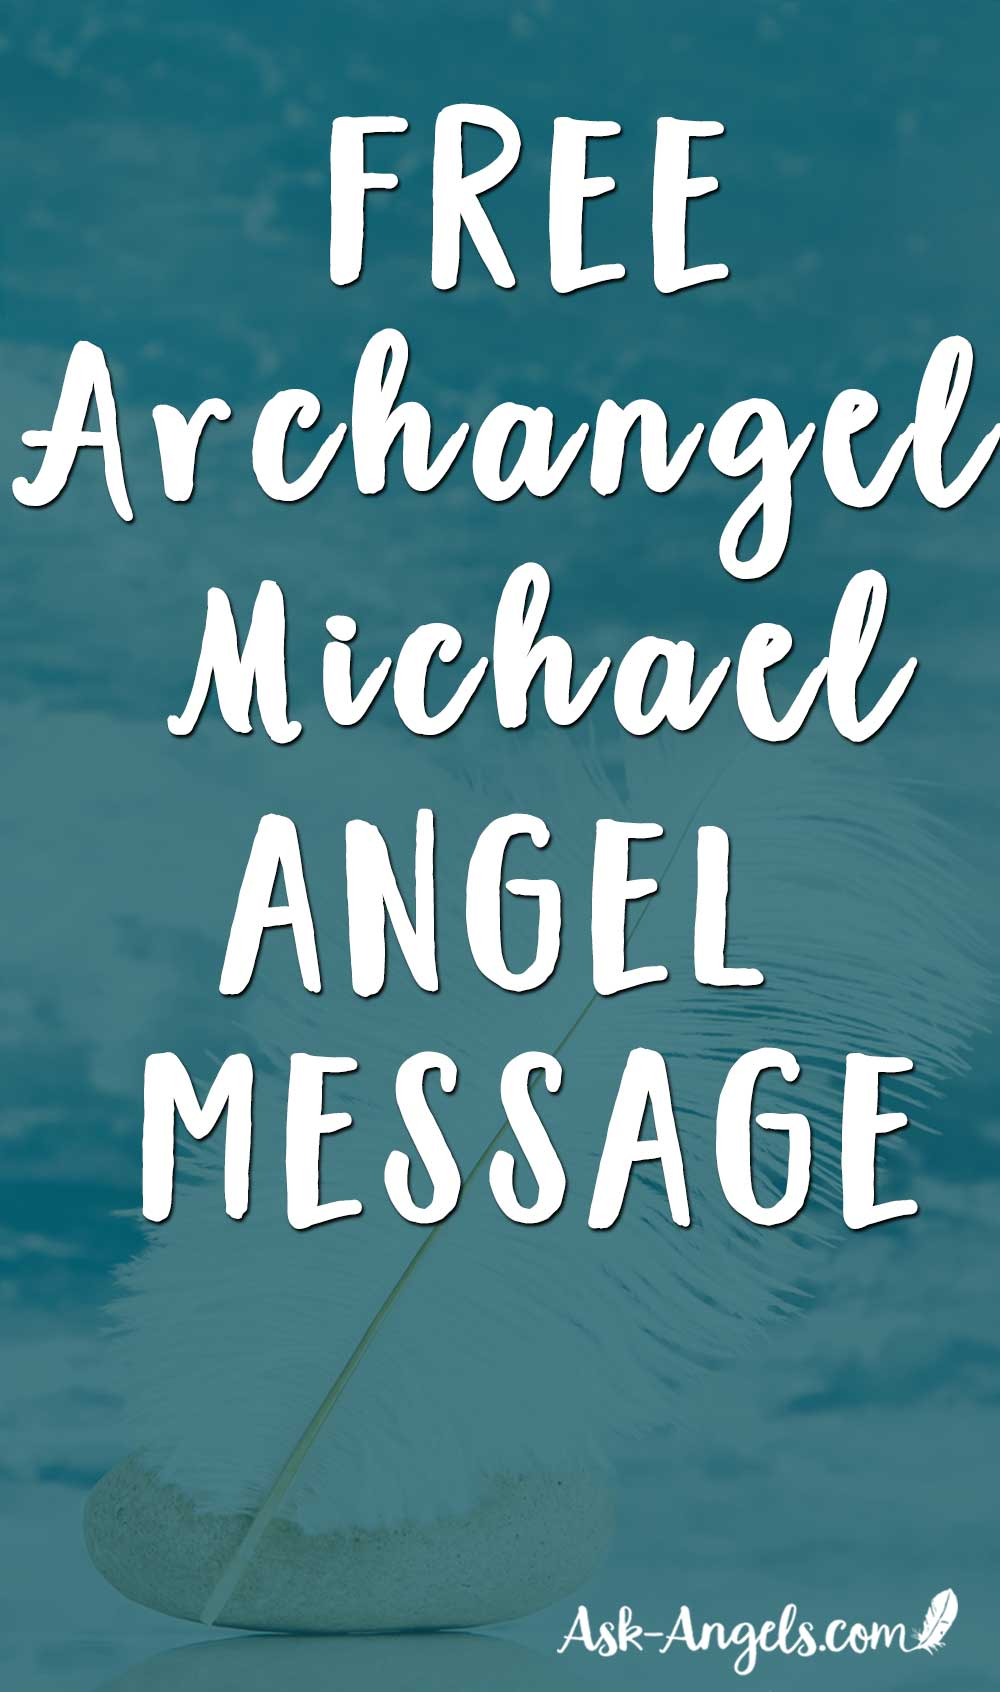 Archangel Michael Angel Message